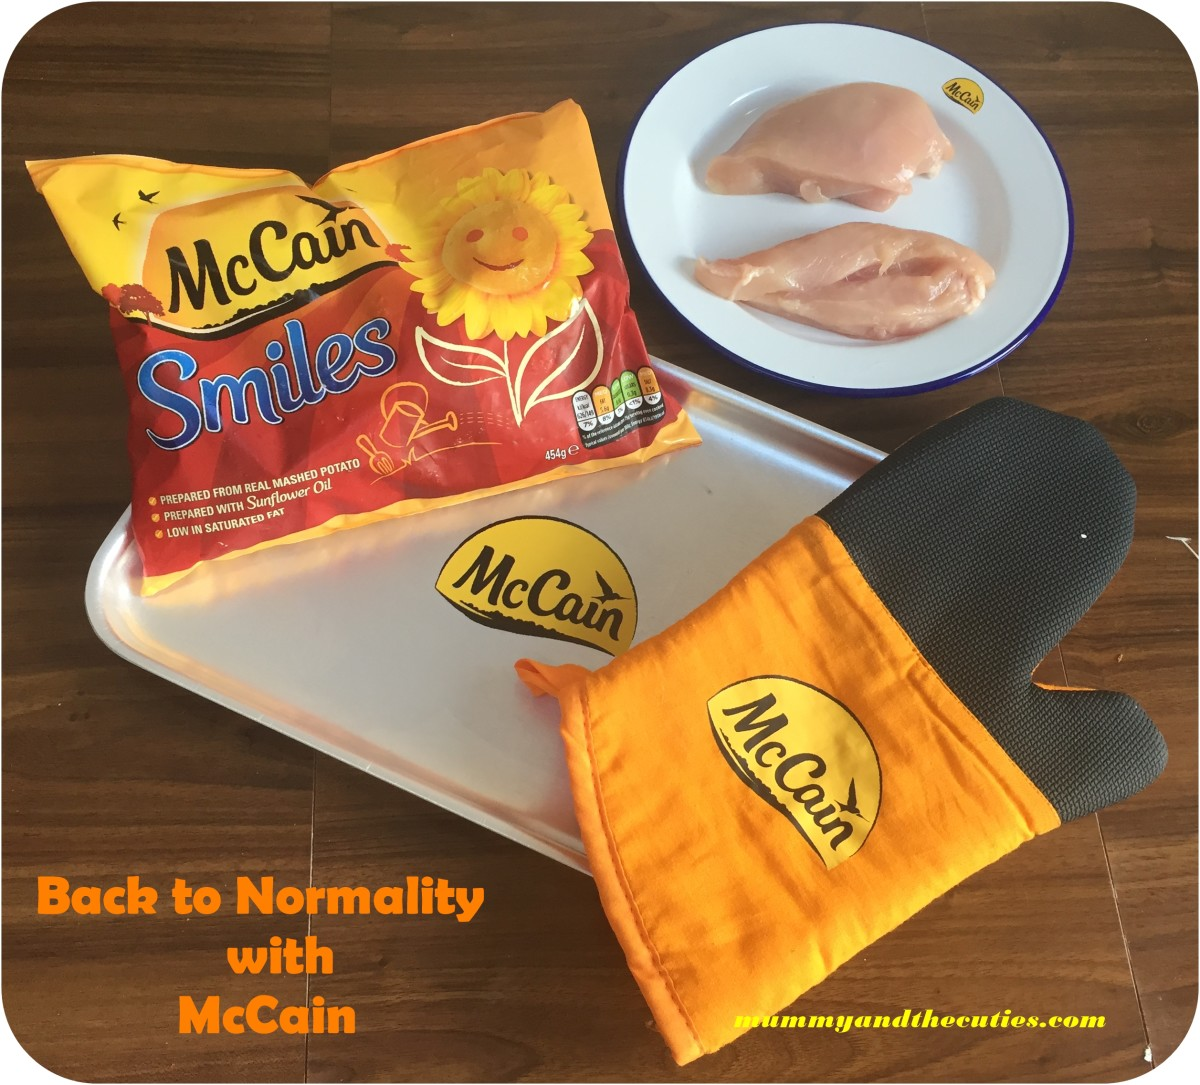 Back to Normality with McCain